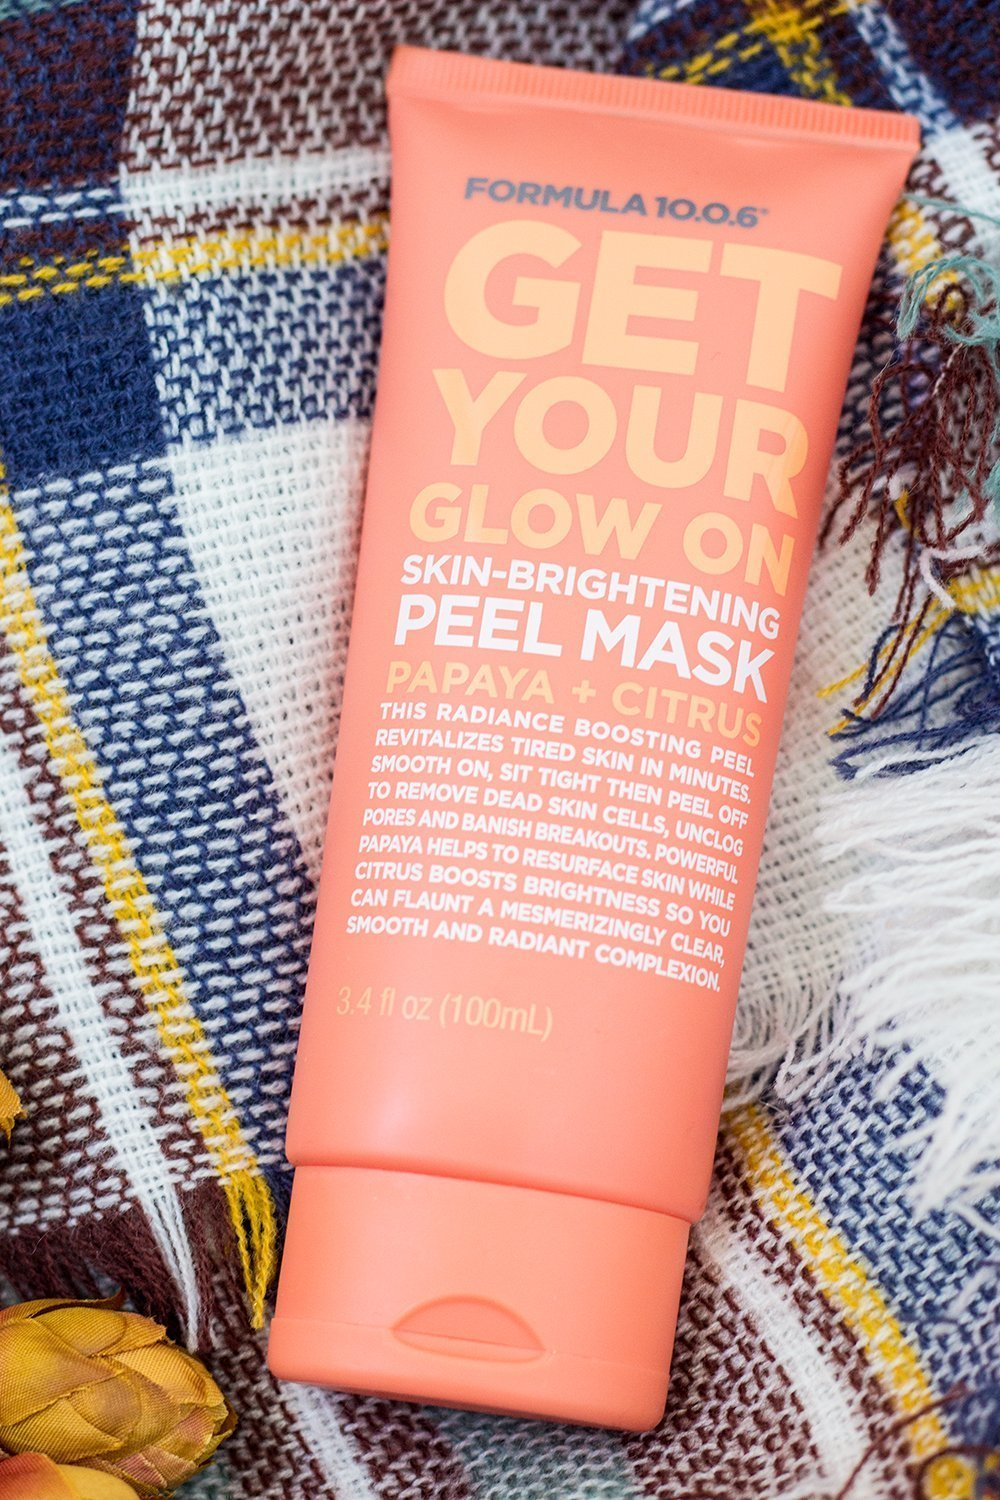 Formula 10.0.6 Get Your Glow On Mask